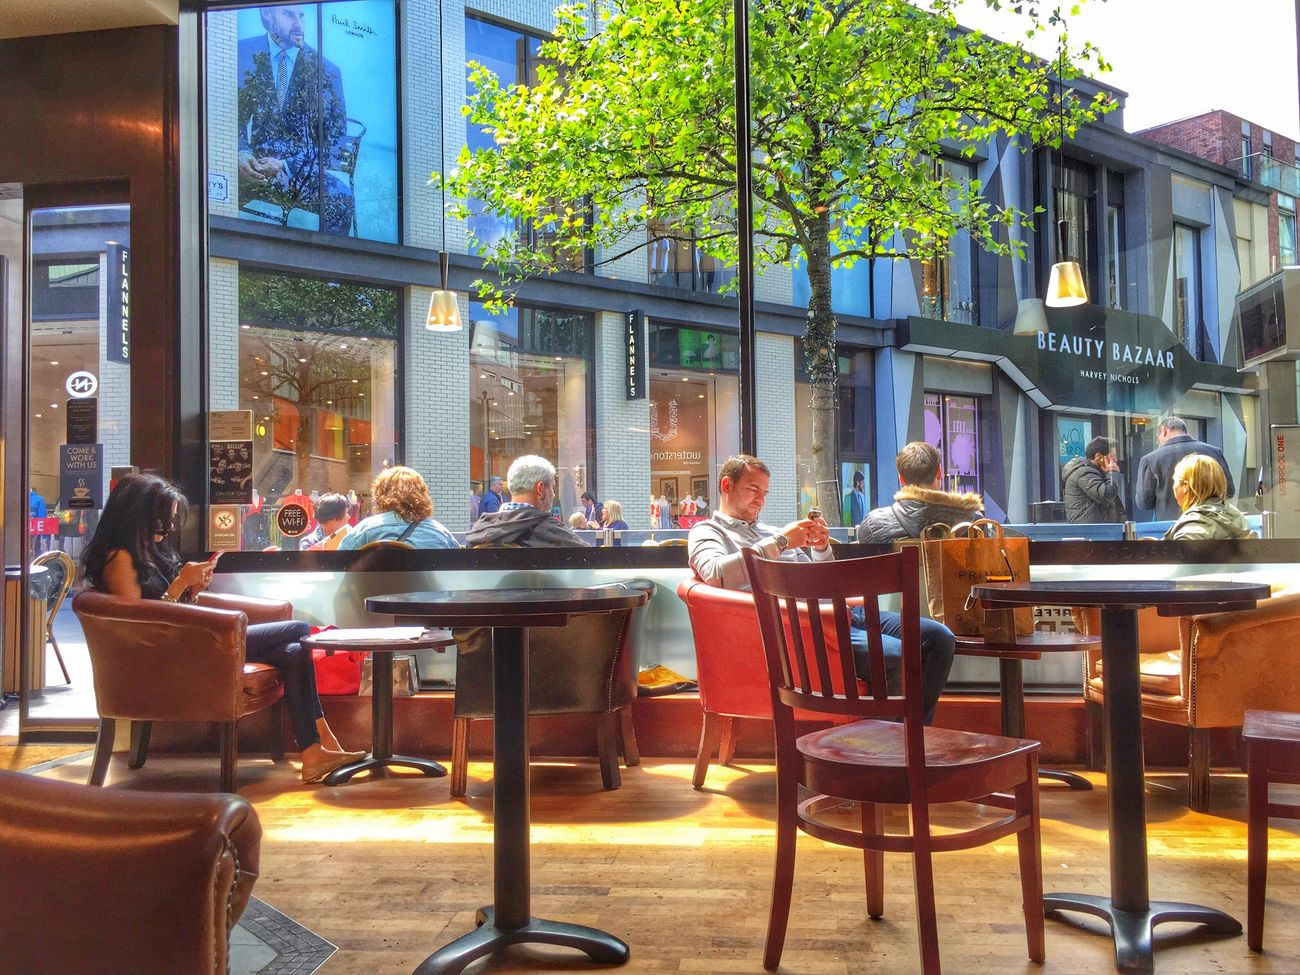 ☕️-time again ☺️ Coffee Streetphotography My Smartphone Life The Places I've Been Today Eye4photography  Enjoying The Sun People HDR Taking Photos People Watching